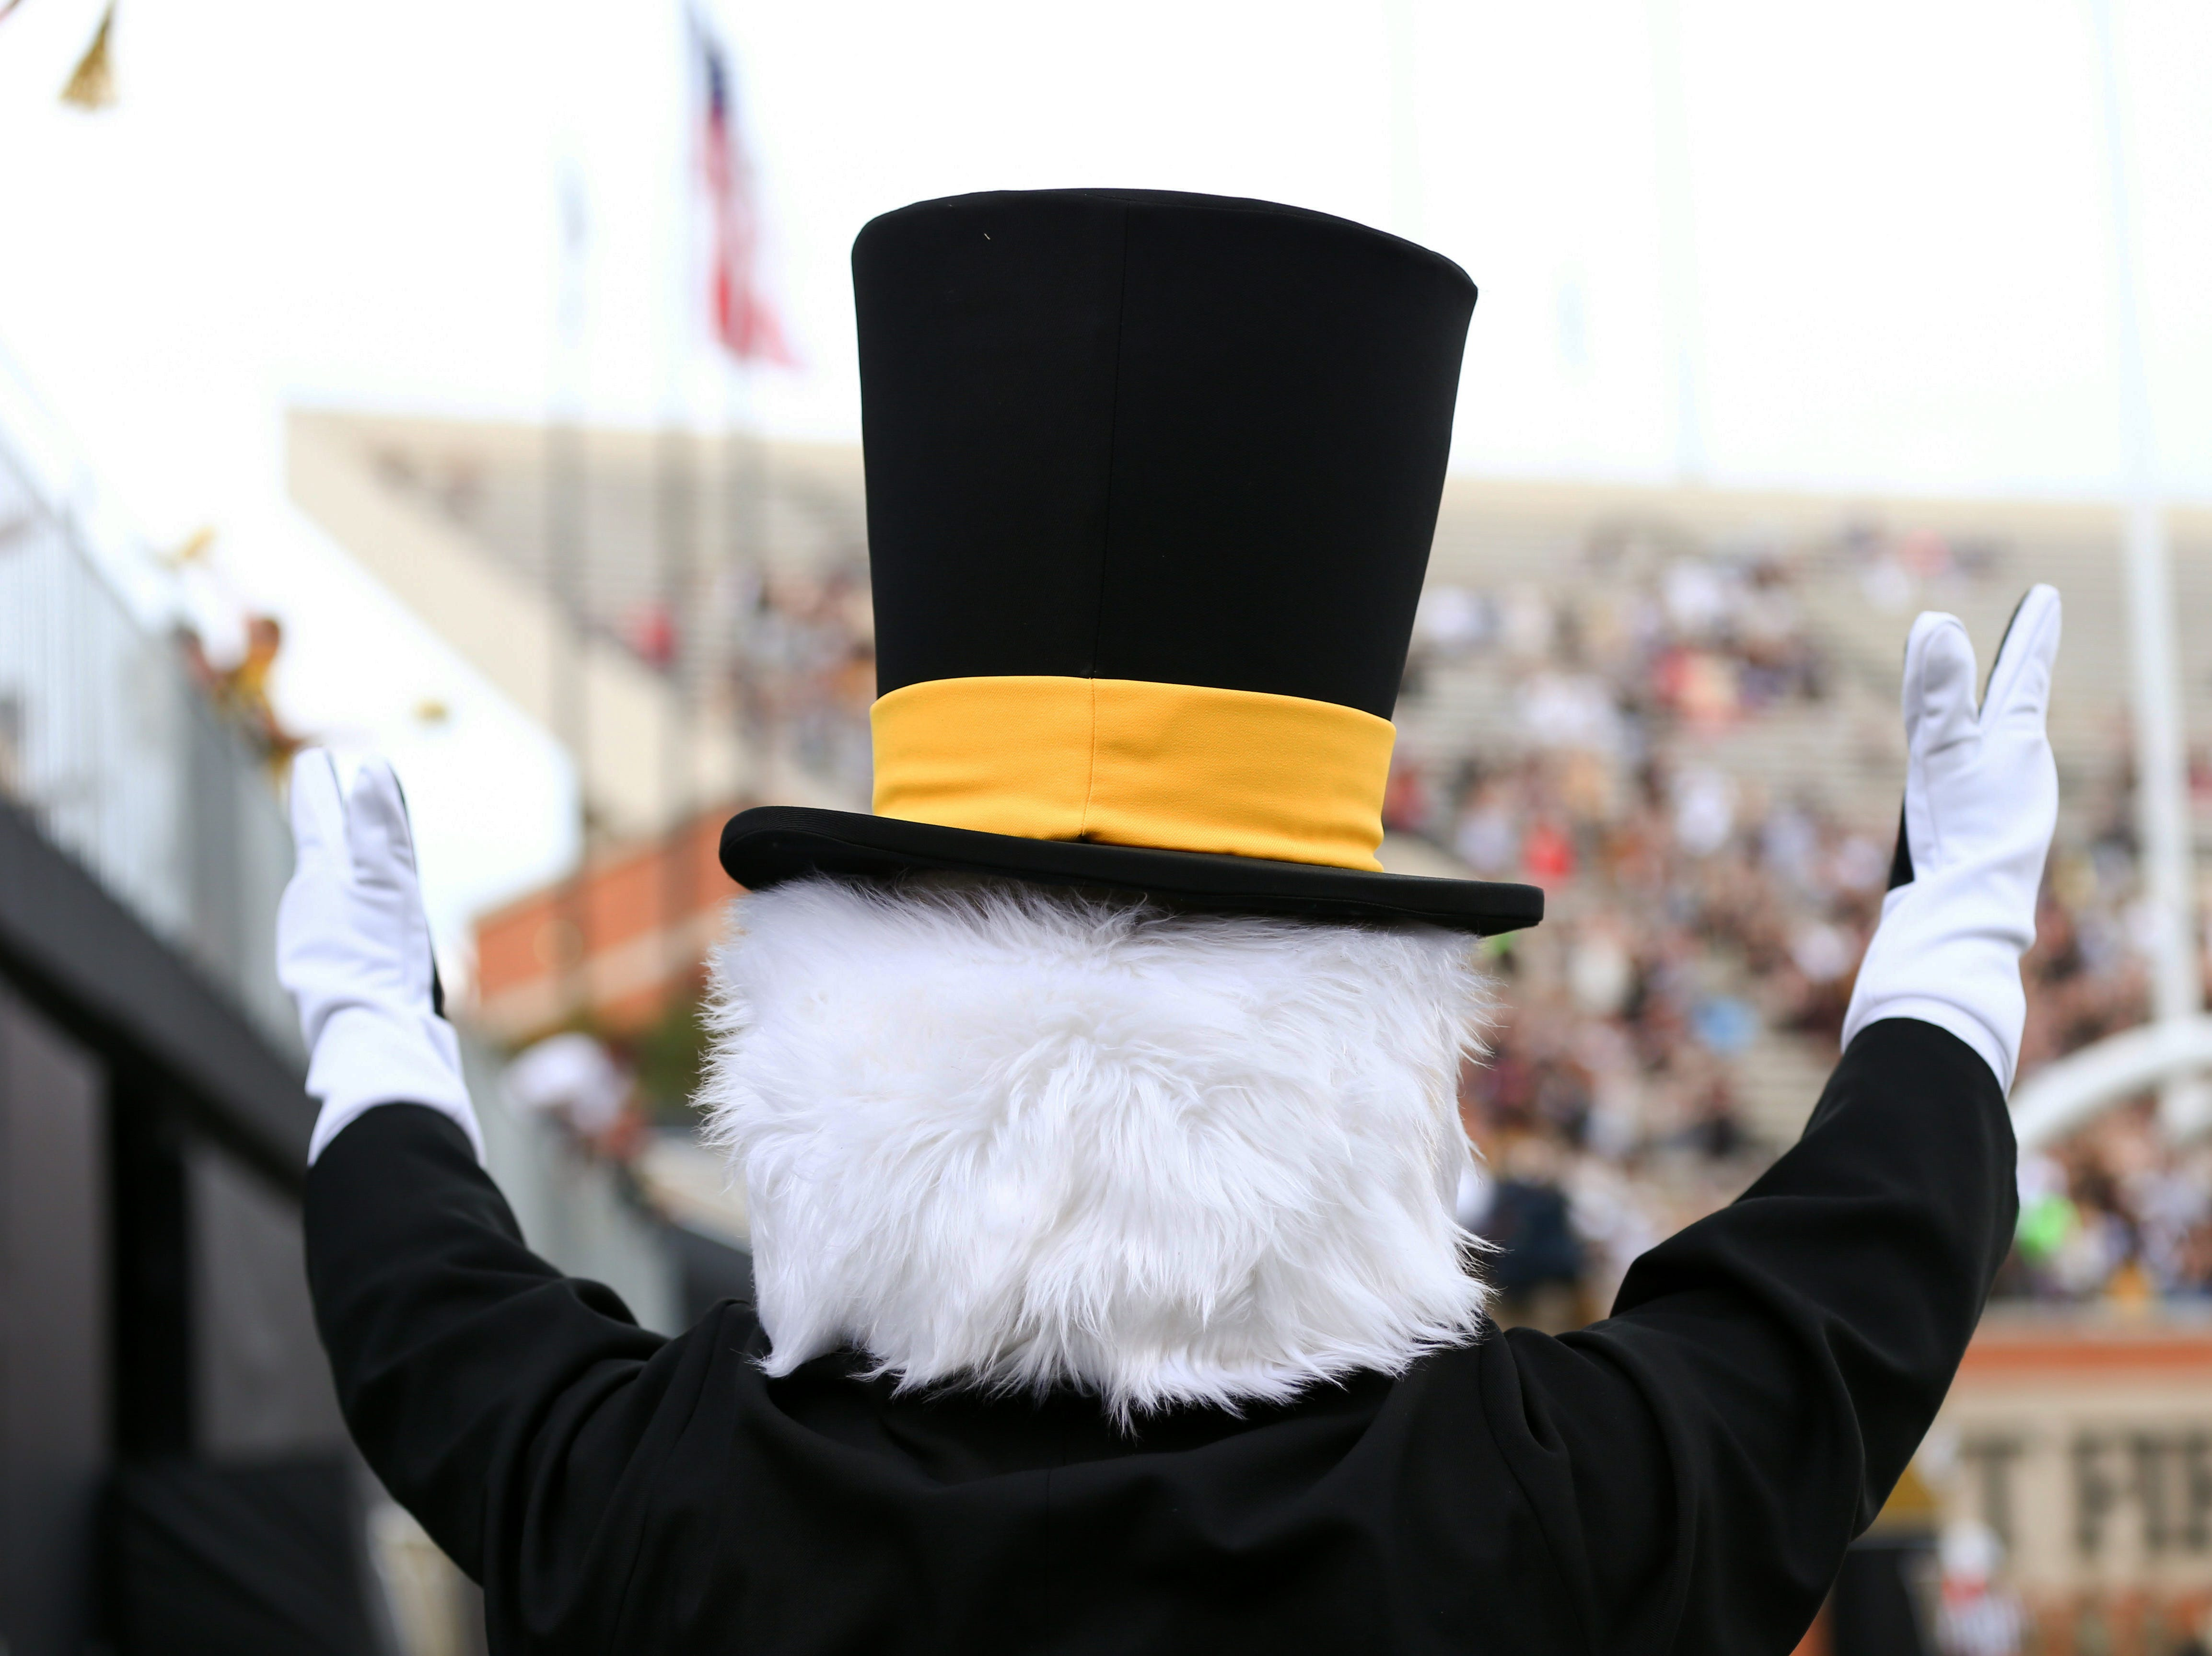 Week 2: The Wake Forest Demon Deacons mascot signals after a touchdown in the second quarter against the Towson Tigers.